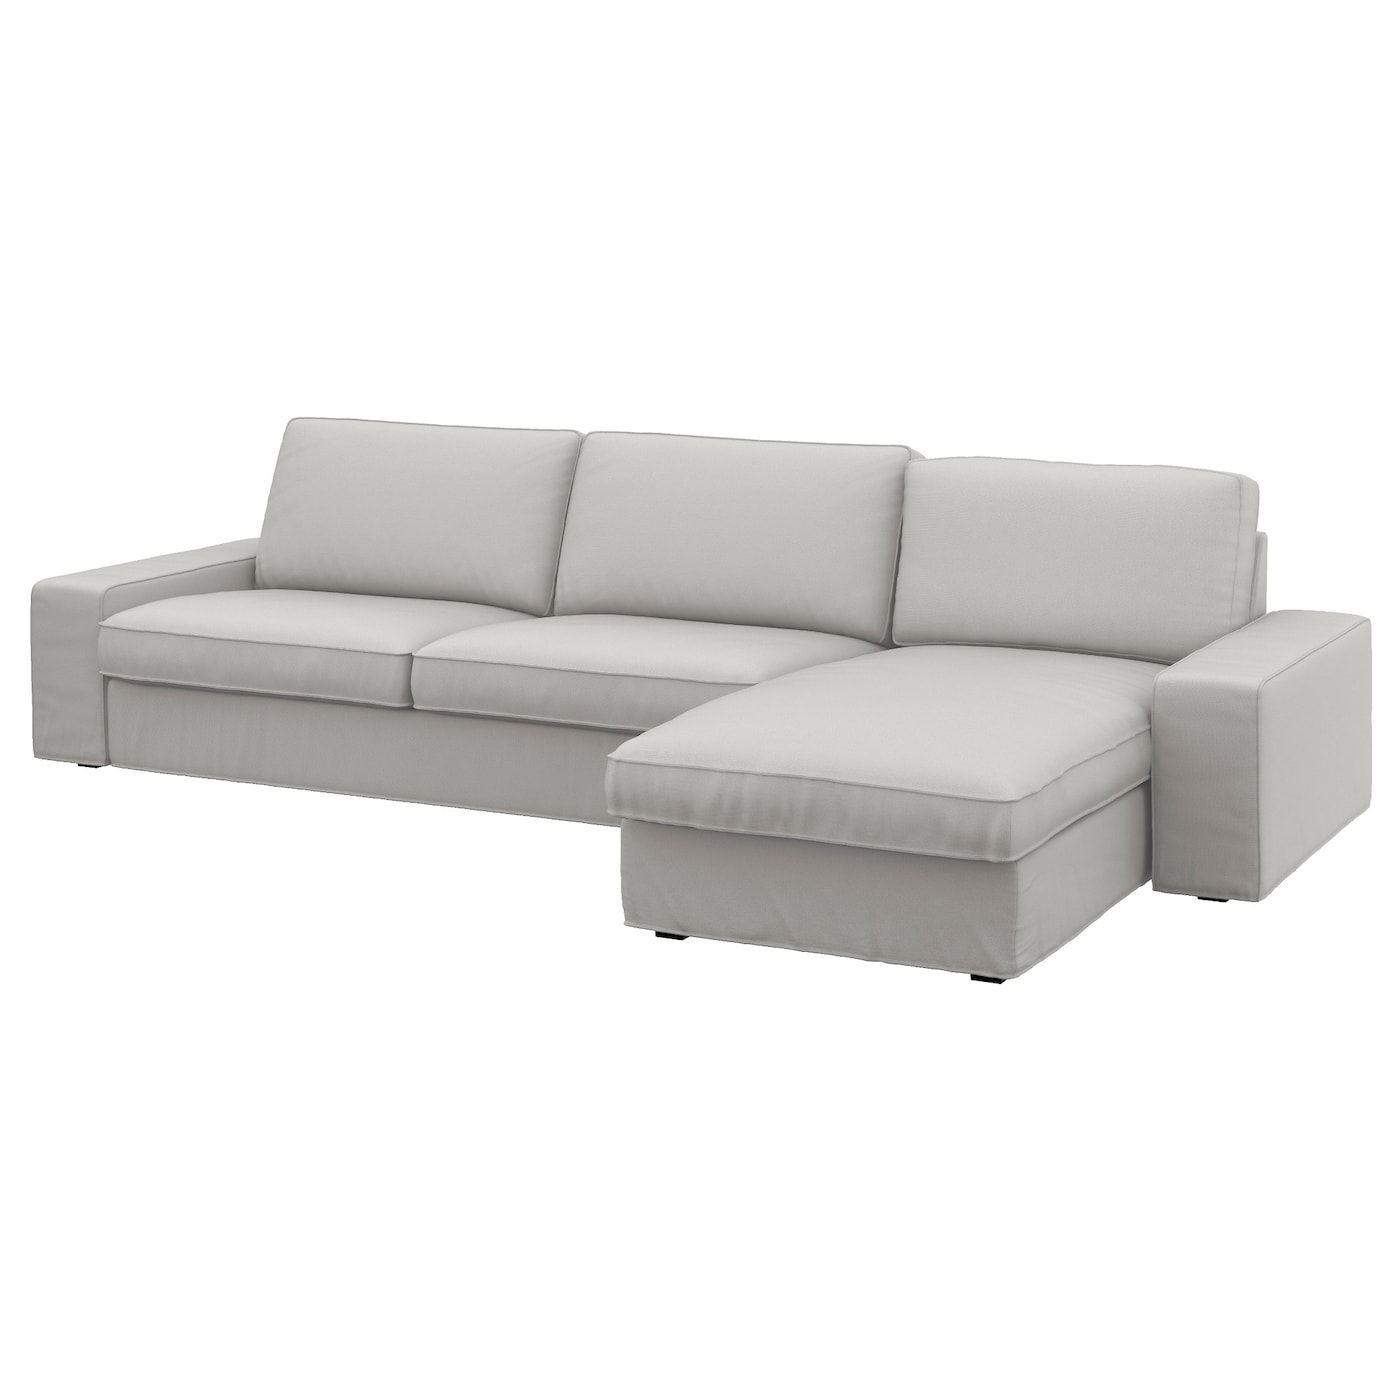 Kivik 4 Seat Sofa Ramna With Chaise Longue Ramna Light Grey In 2020 Ikea Sofa Bed Sofa Bed Uk Ikea Sofa